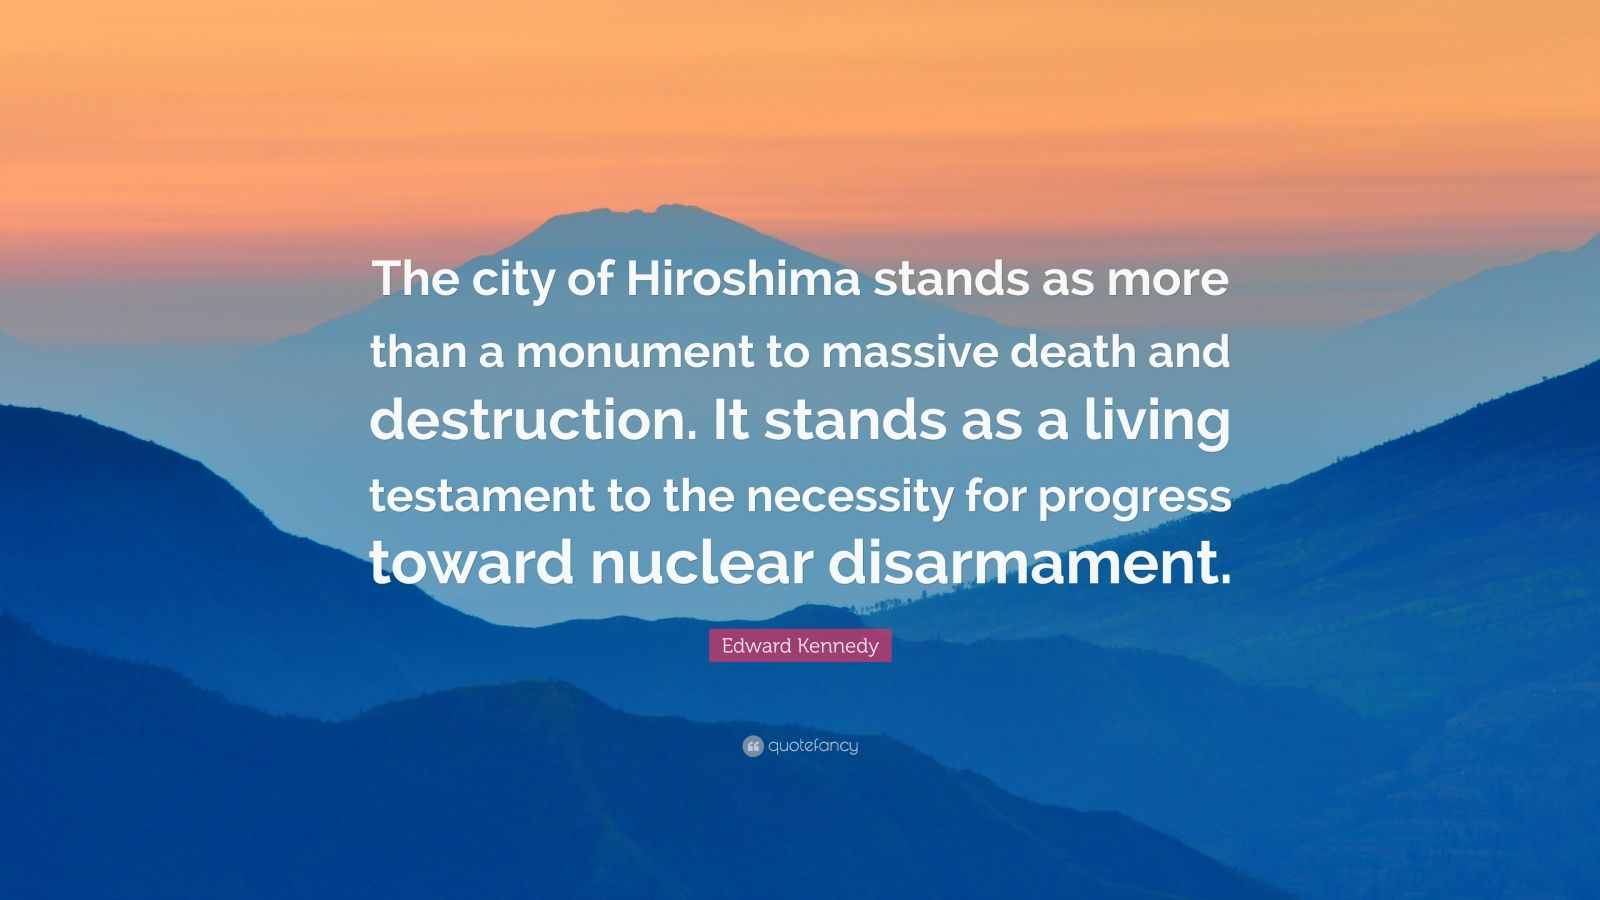 """Edward Kennedy Quote: """"The city of Hiroshima stands as more than a monument to massive death and destruction. It stands as a living testament to the necessity for progress toward nuclear disarmament."""""""